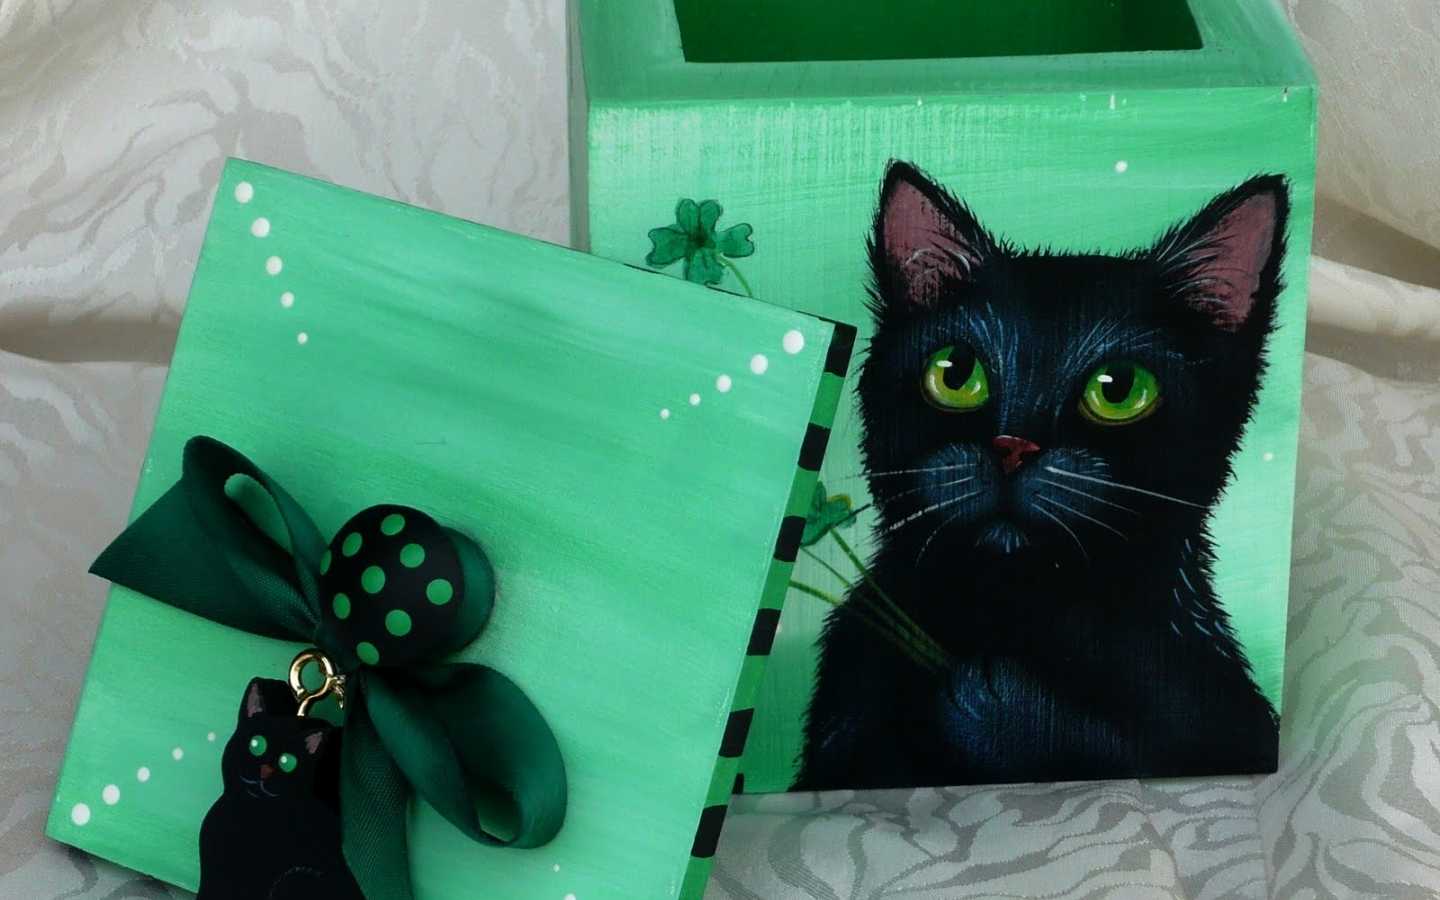 download st patrick s cat day black st patrick day holiday 1440x900